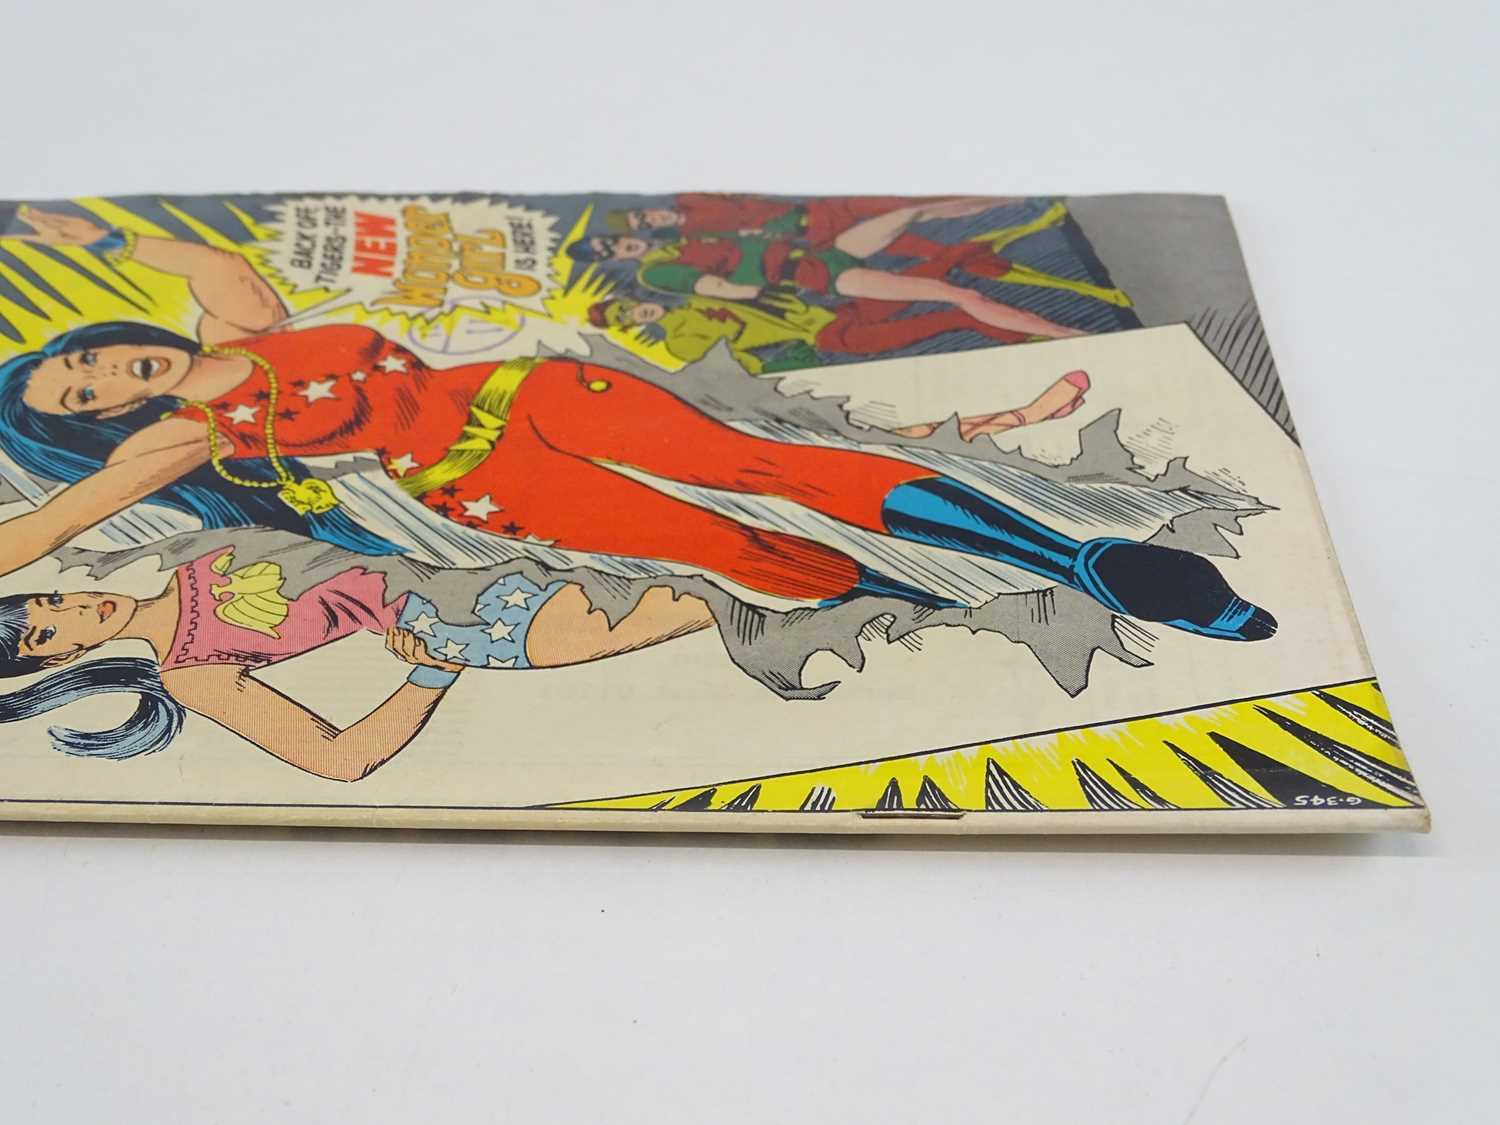 TEEN TITANS #23 - (1969 - DC - UK Cover Price) - Classic DC Cover - New costume for Wonder Girl - Image 9 of 9